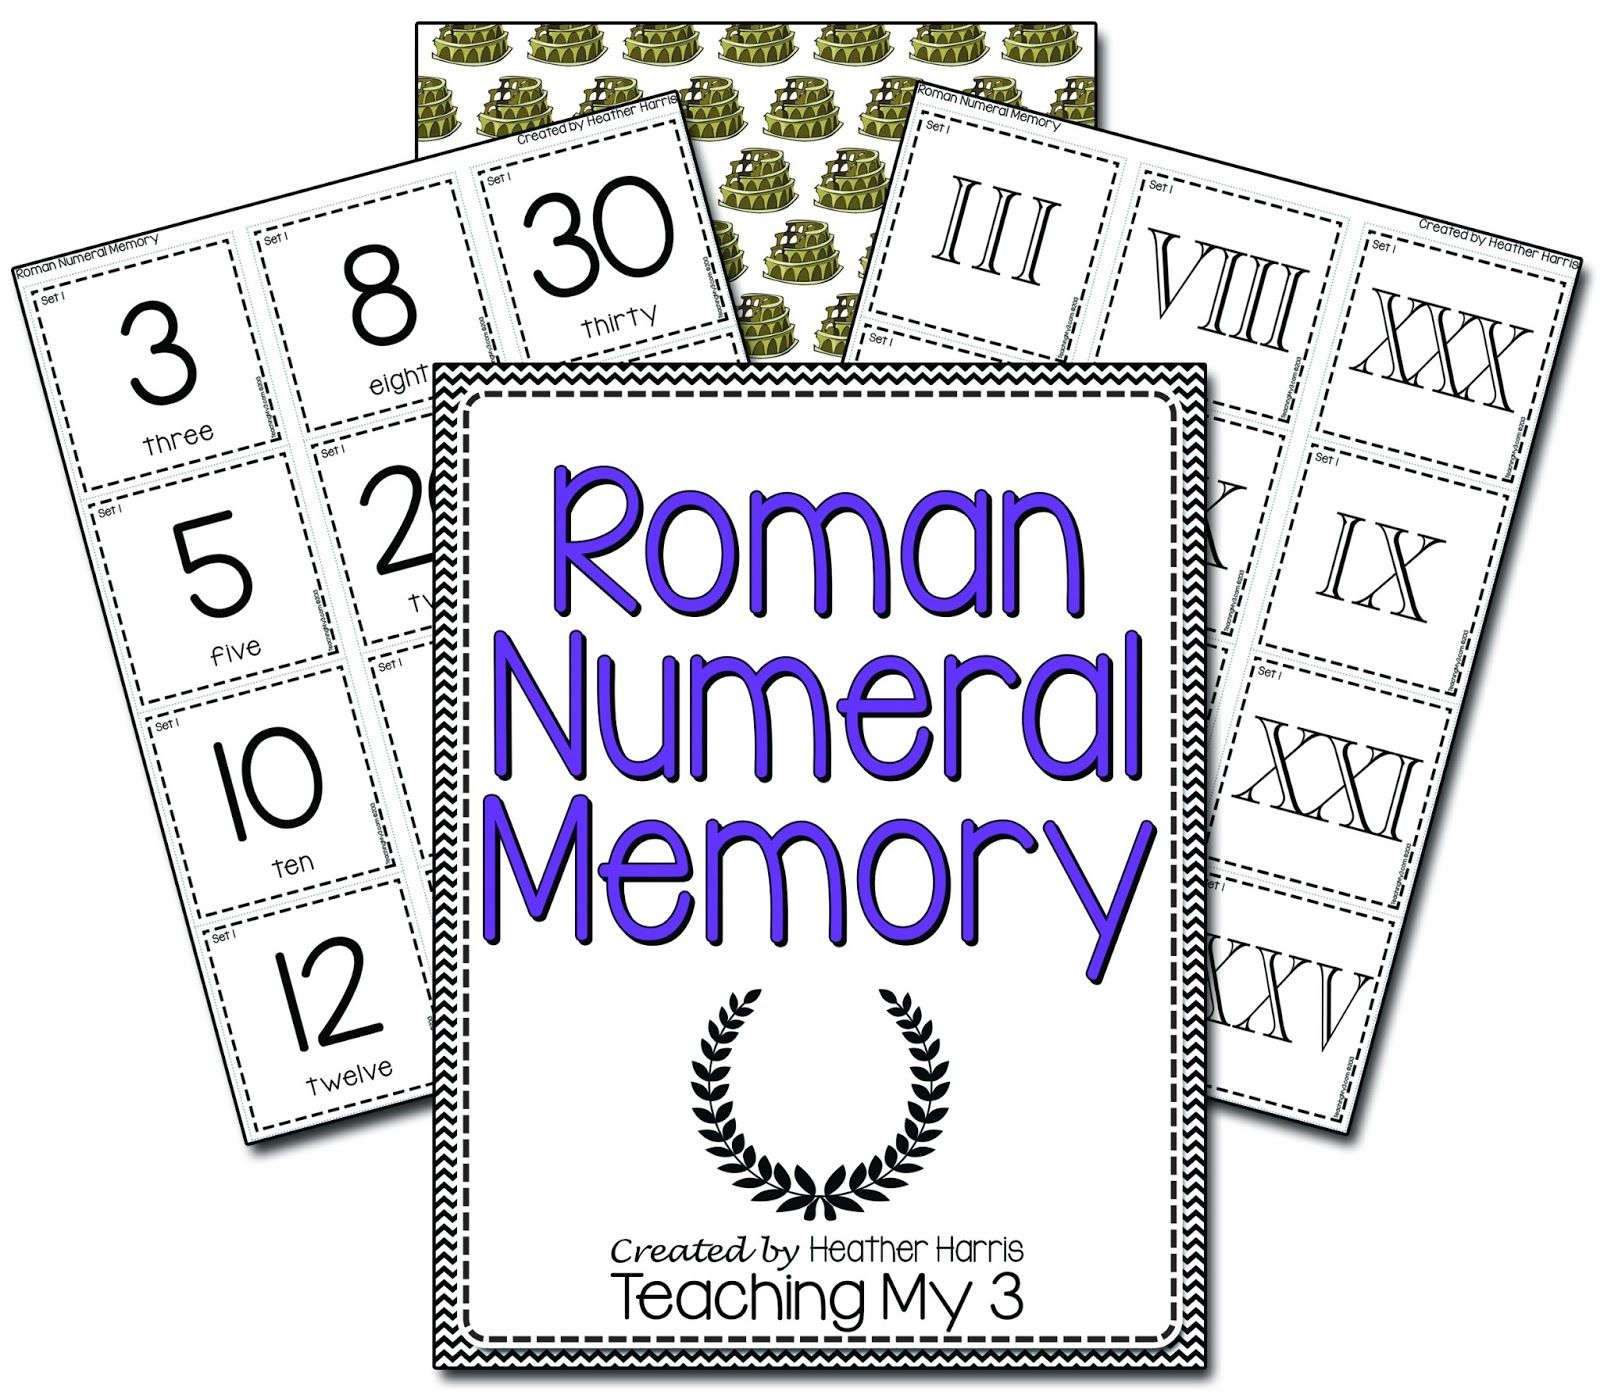 Roman Numeral Memory Fun Way To Learn Roman Numerals